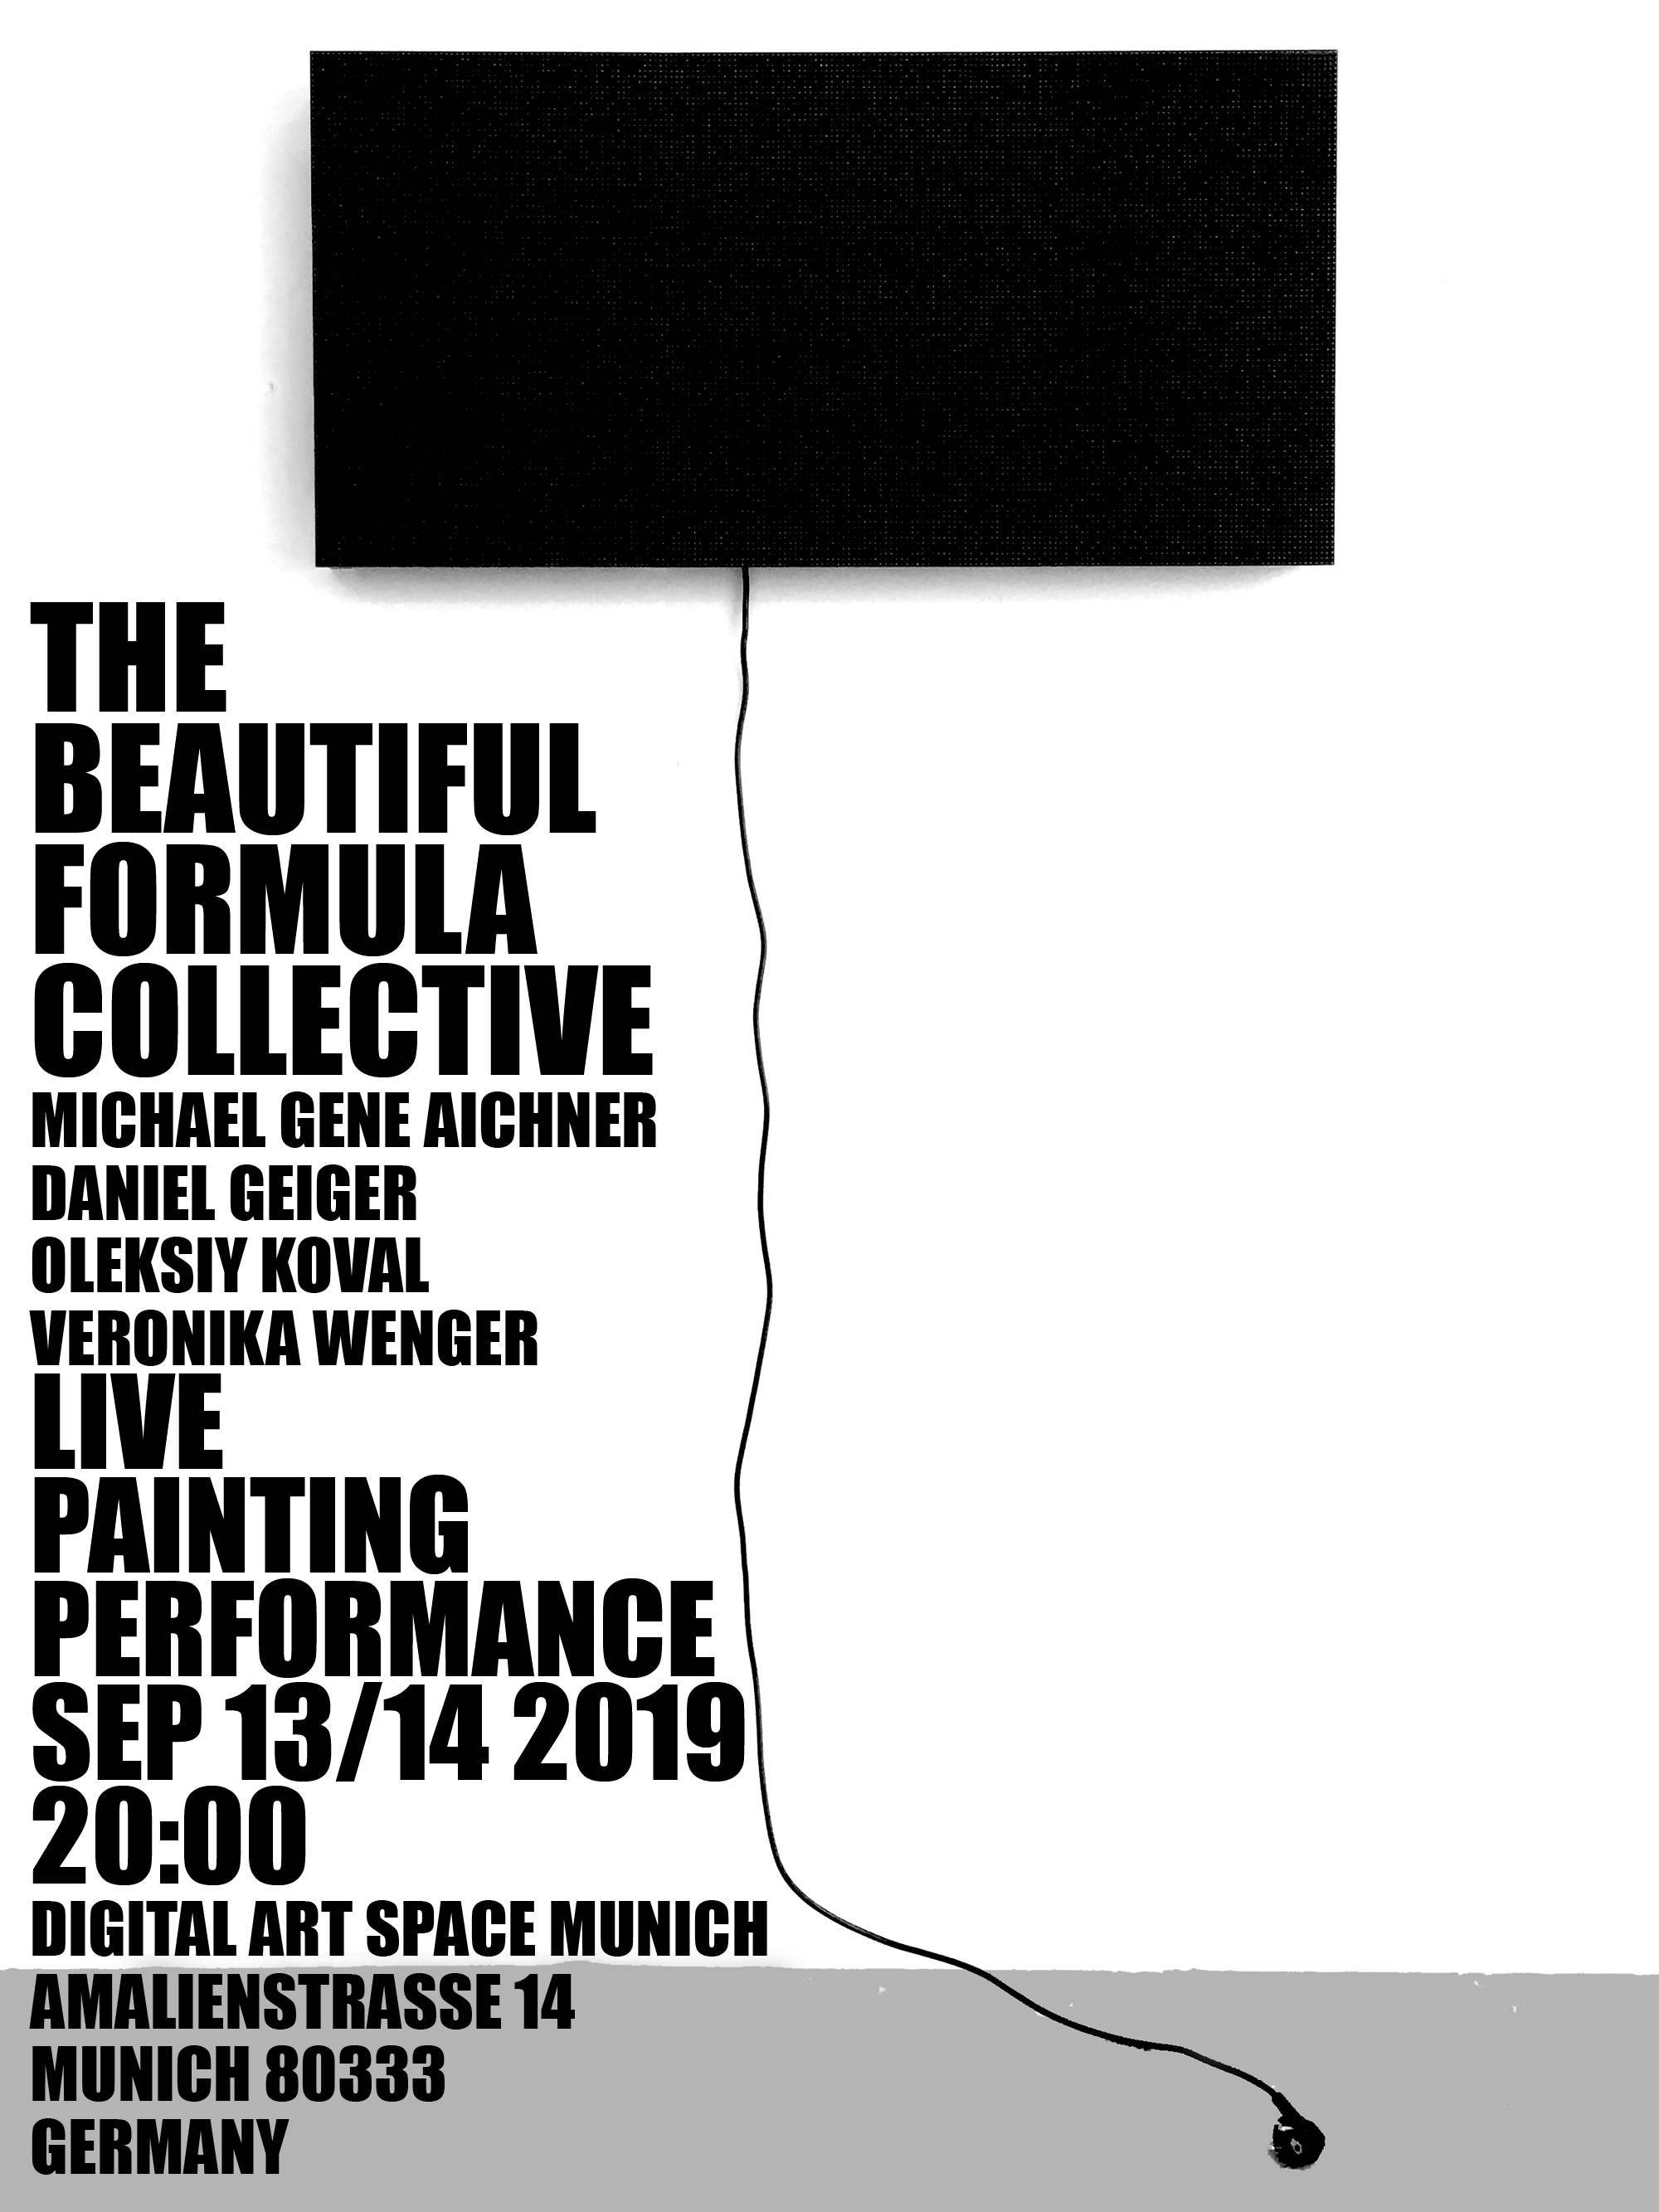 The Beautiful Formula Collective LIVE PAINTING PERFORMANCE